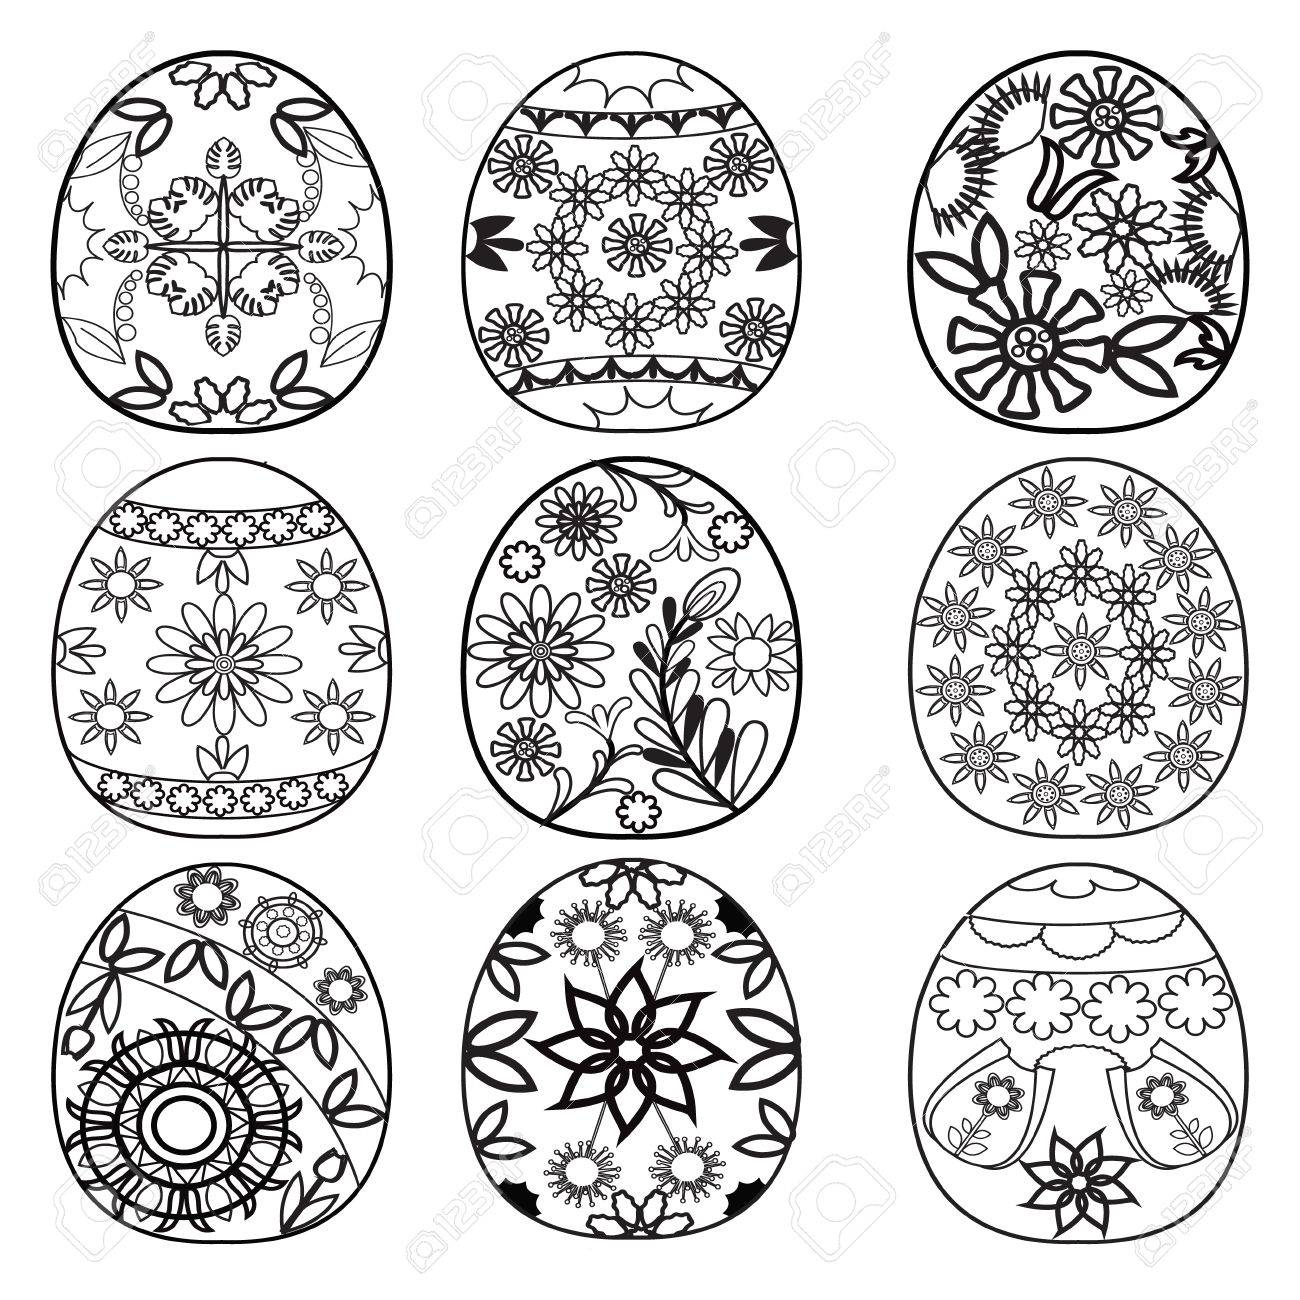 Hand Drawn Easter Eggs For Coloring Book Adult And Children Design Elements Stock Vector